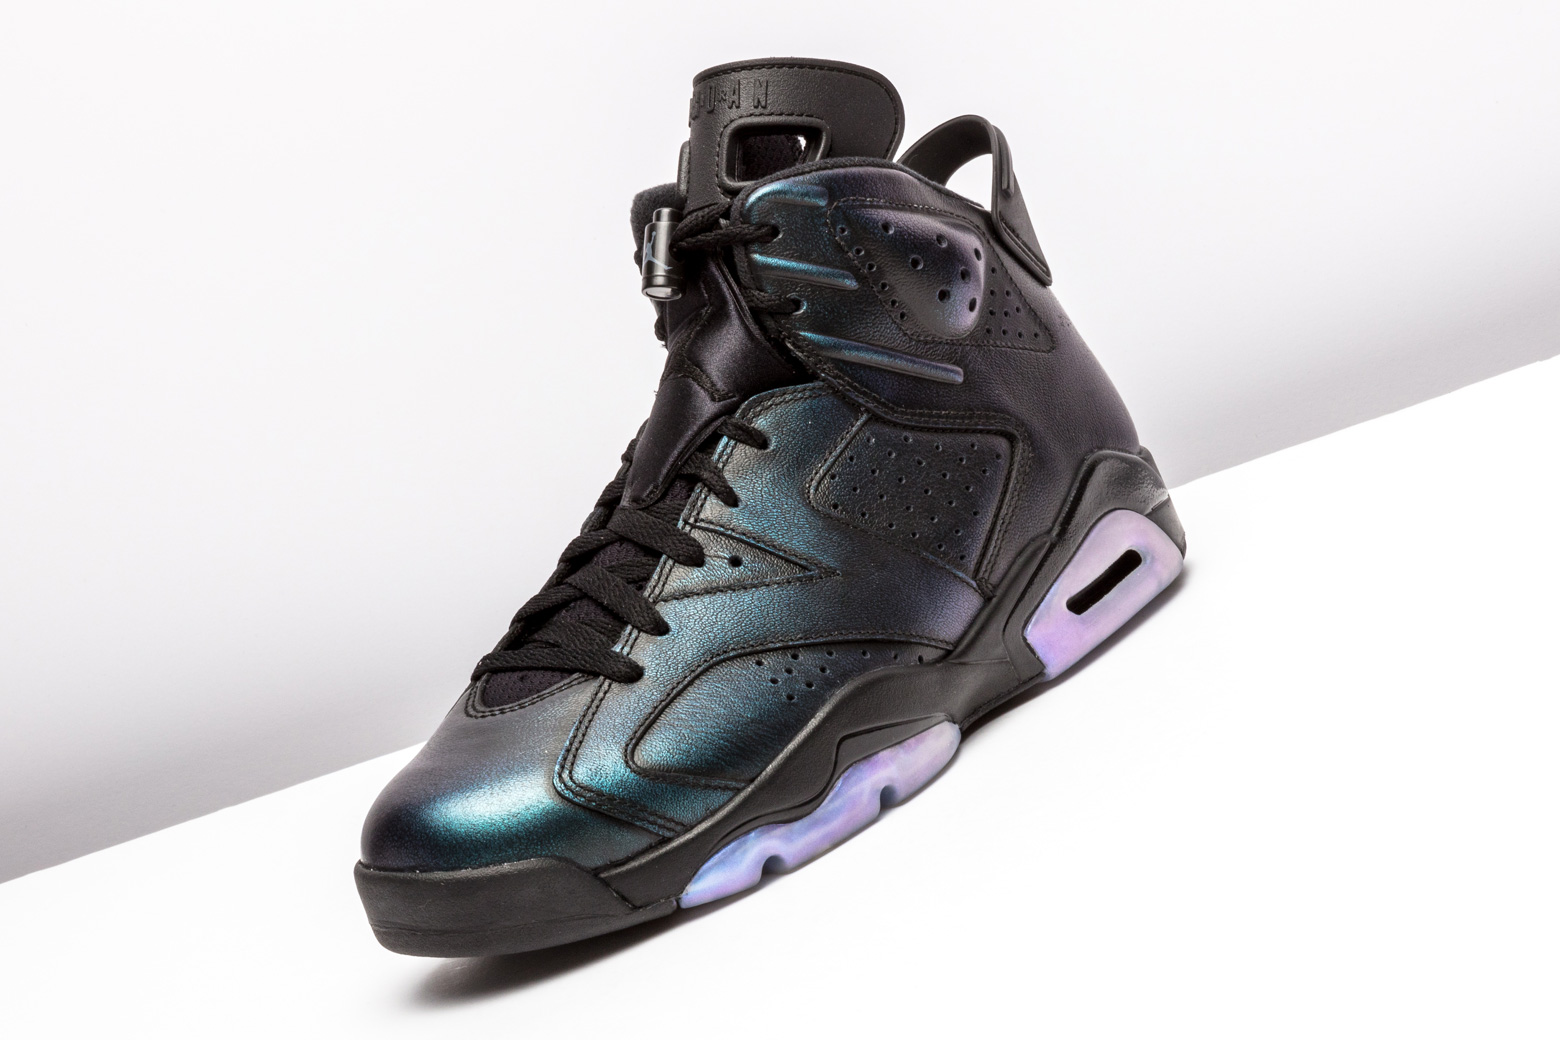 428ee8a918b34b Color  Black Black-White Style  907961-015. Release Date  02 17 2017.  Price   225.00. air jordan 6 all star